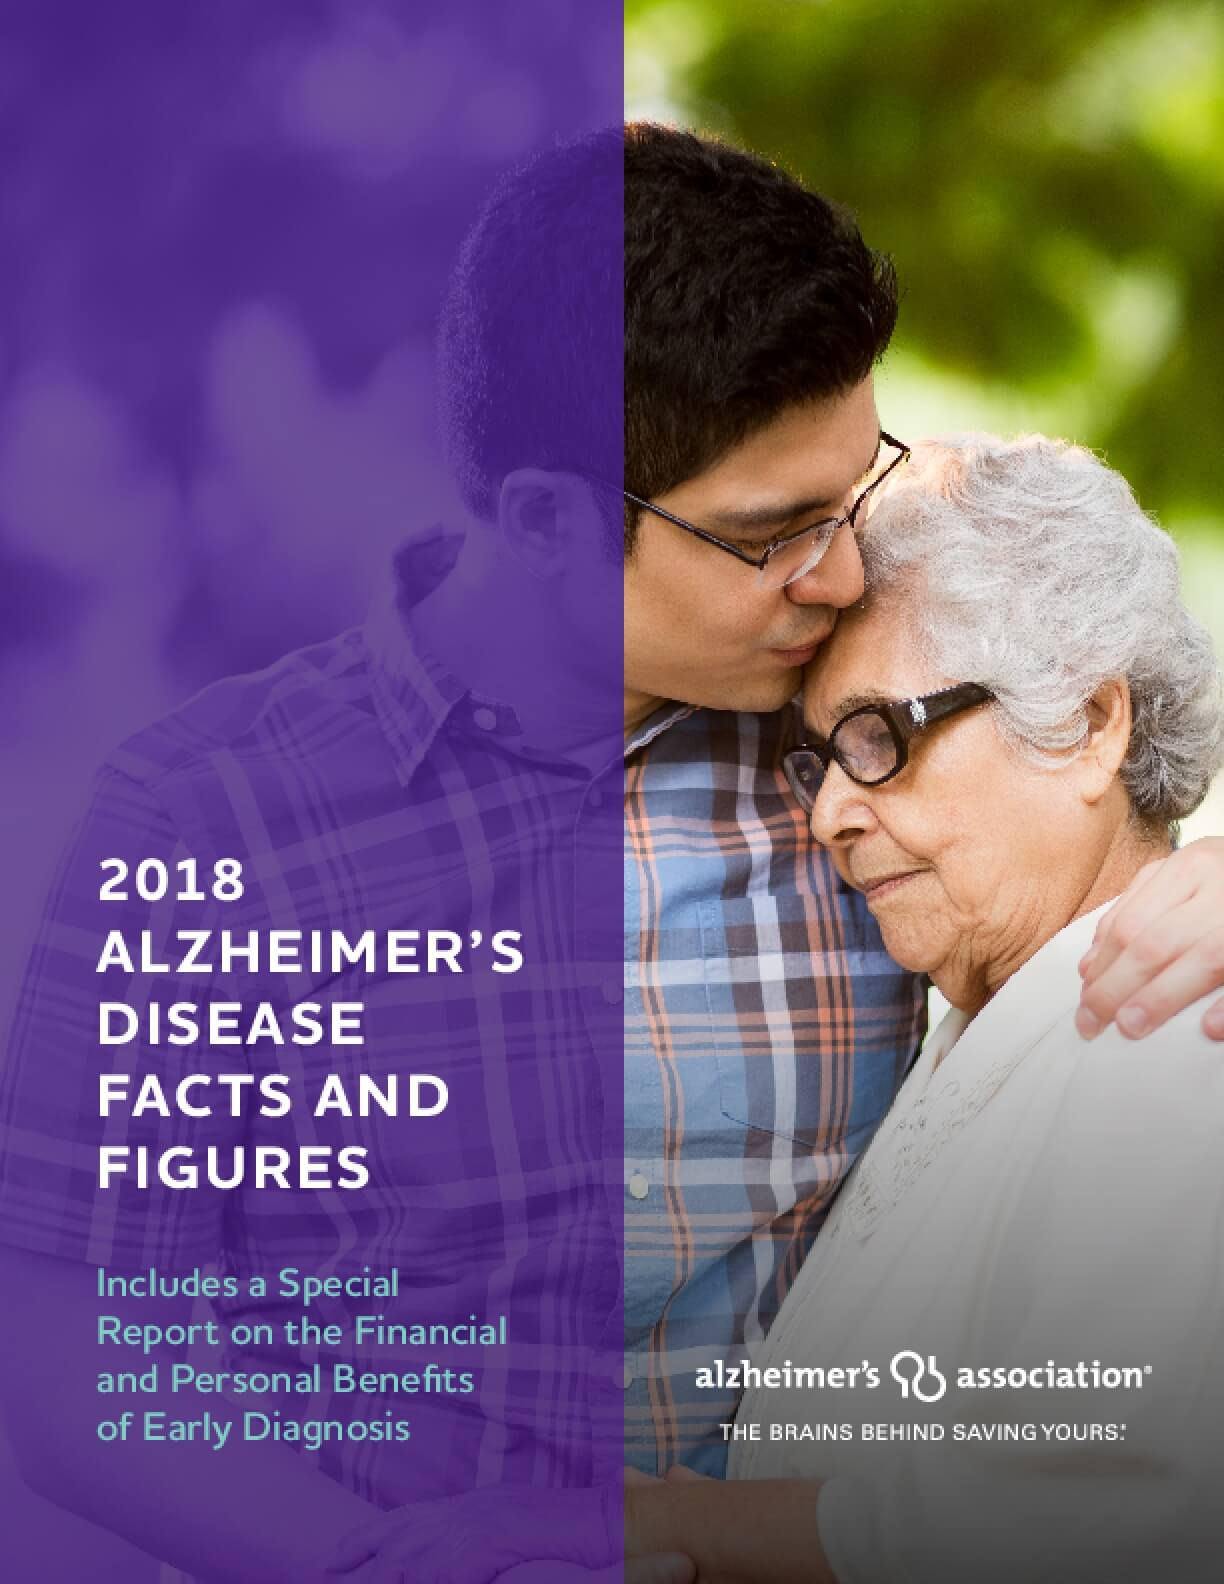 2018 Alzheimer's Disease Facts and Figures